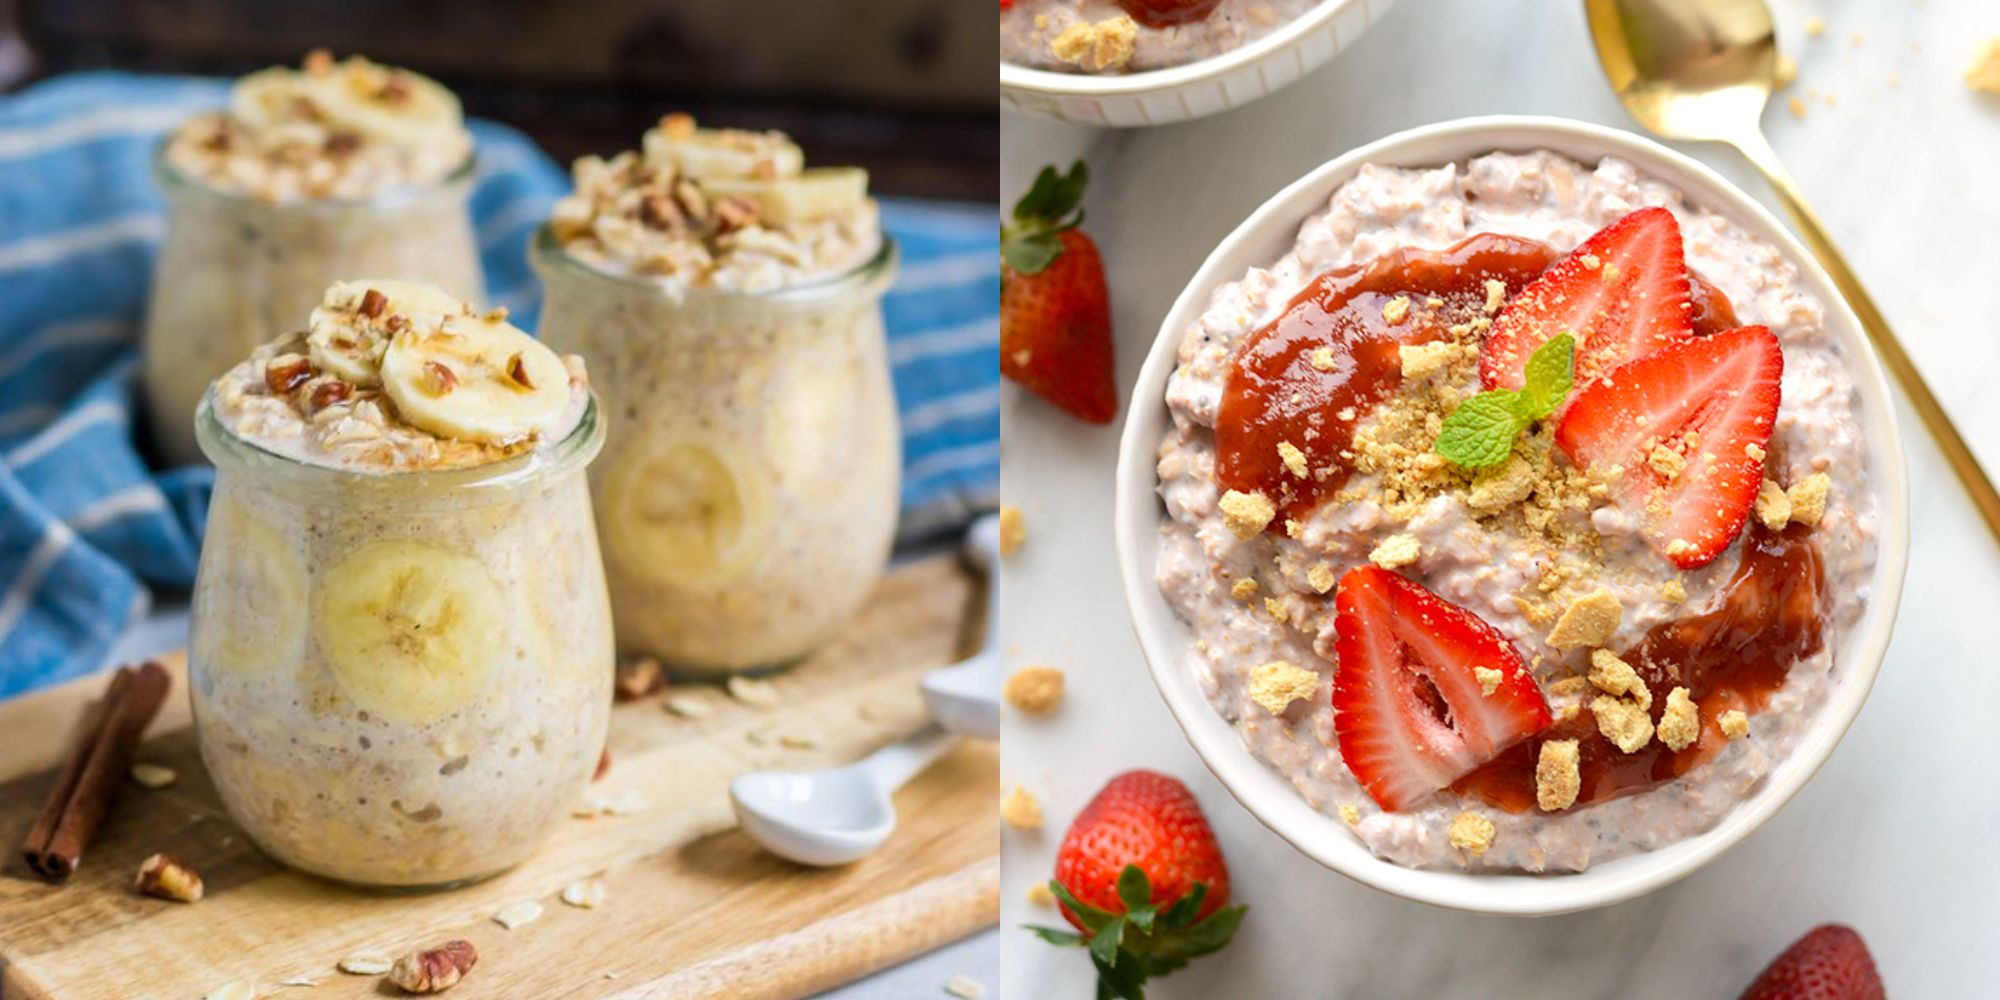 18 Overnight Oats Recipes for a Stress-Free Morning